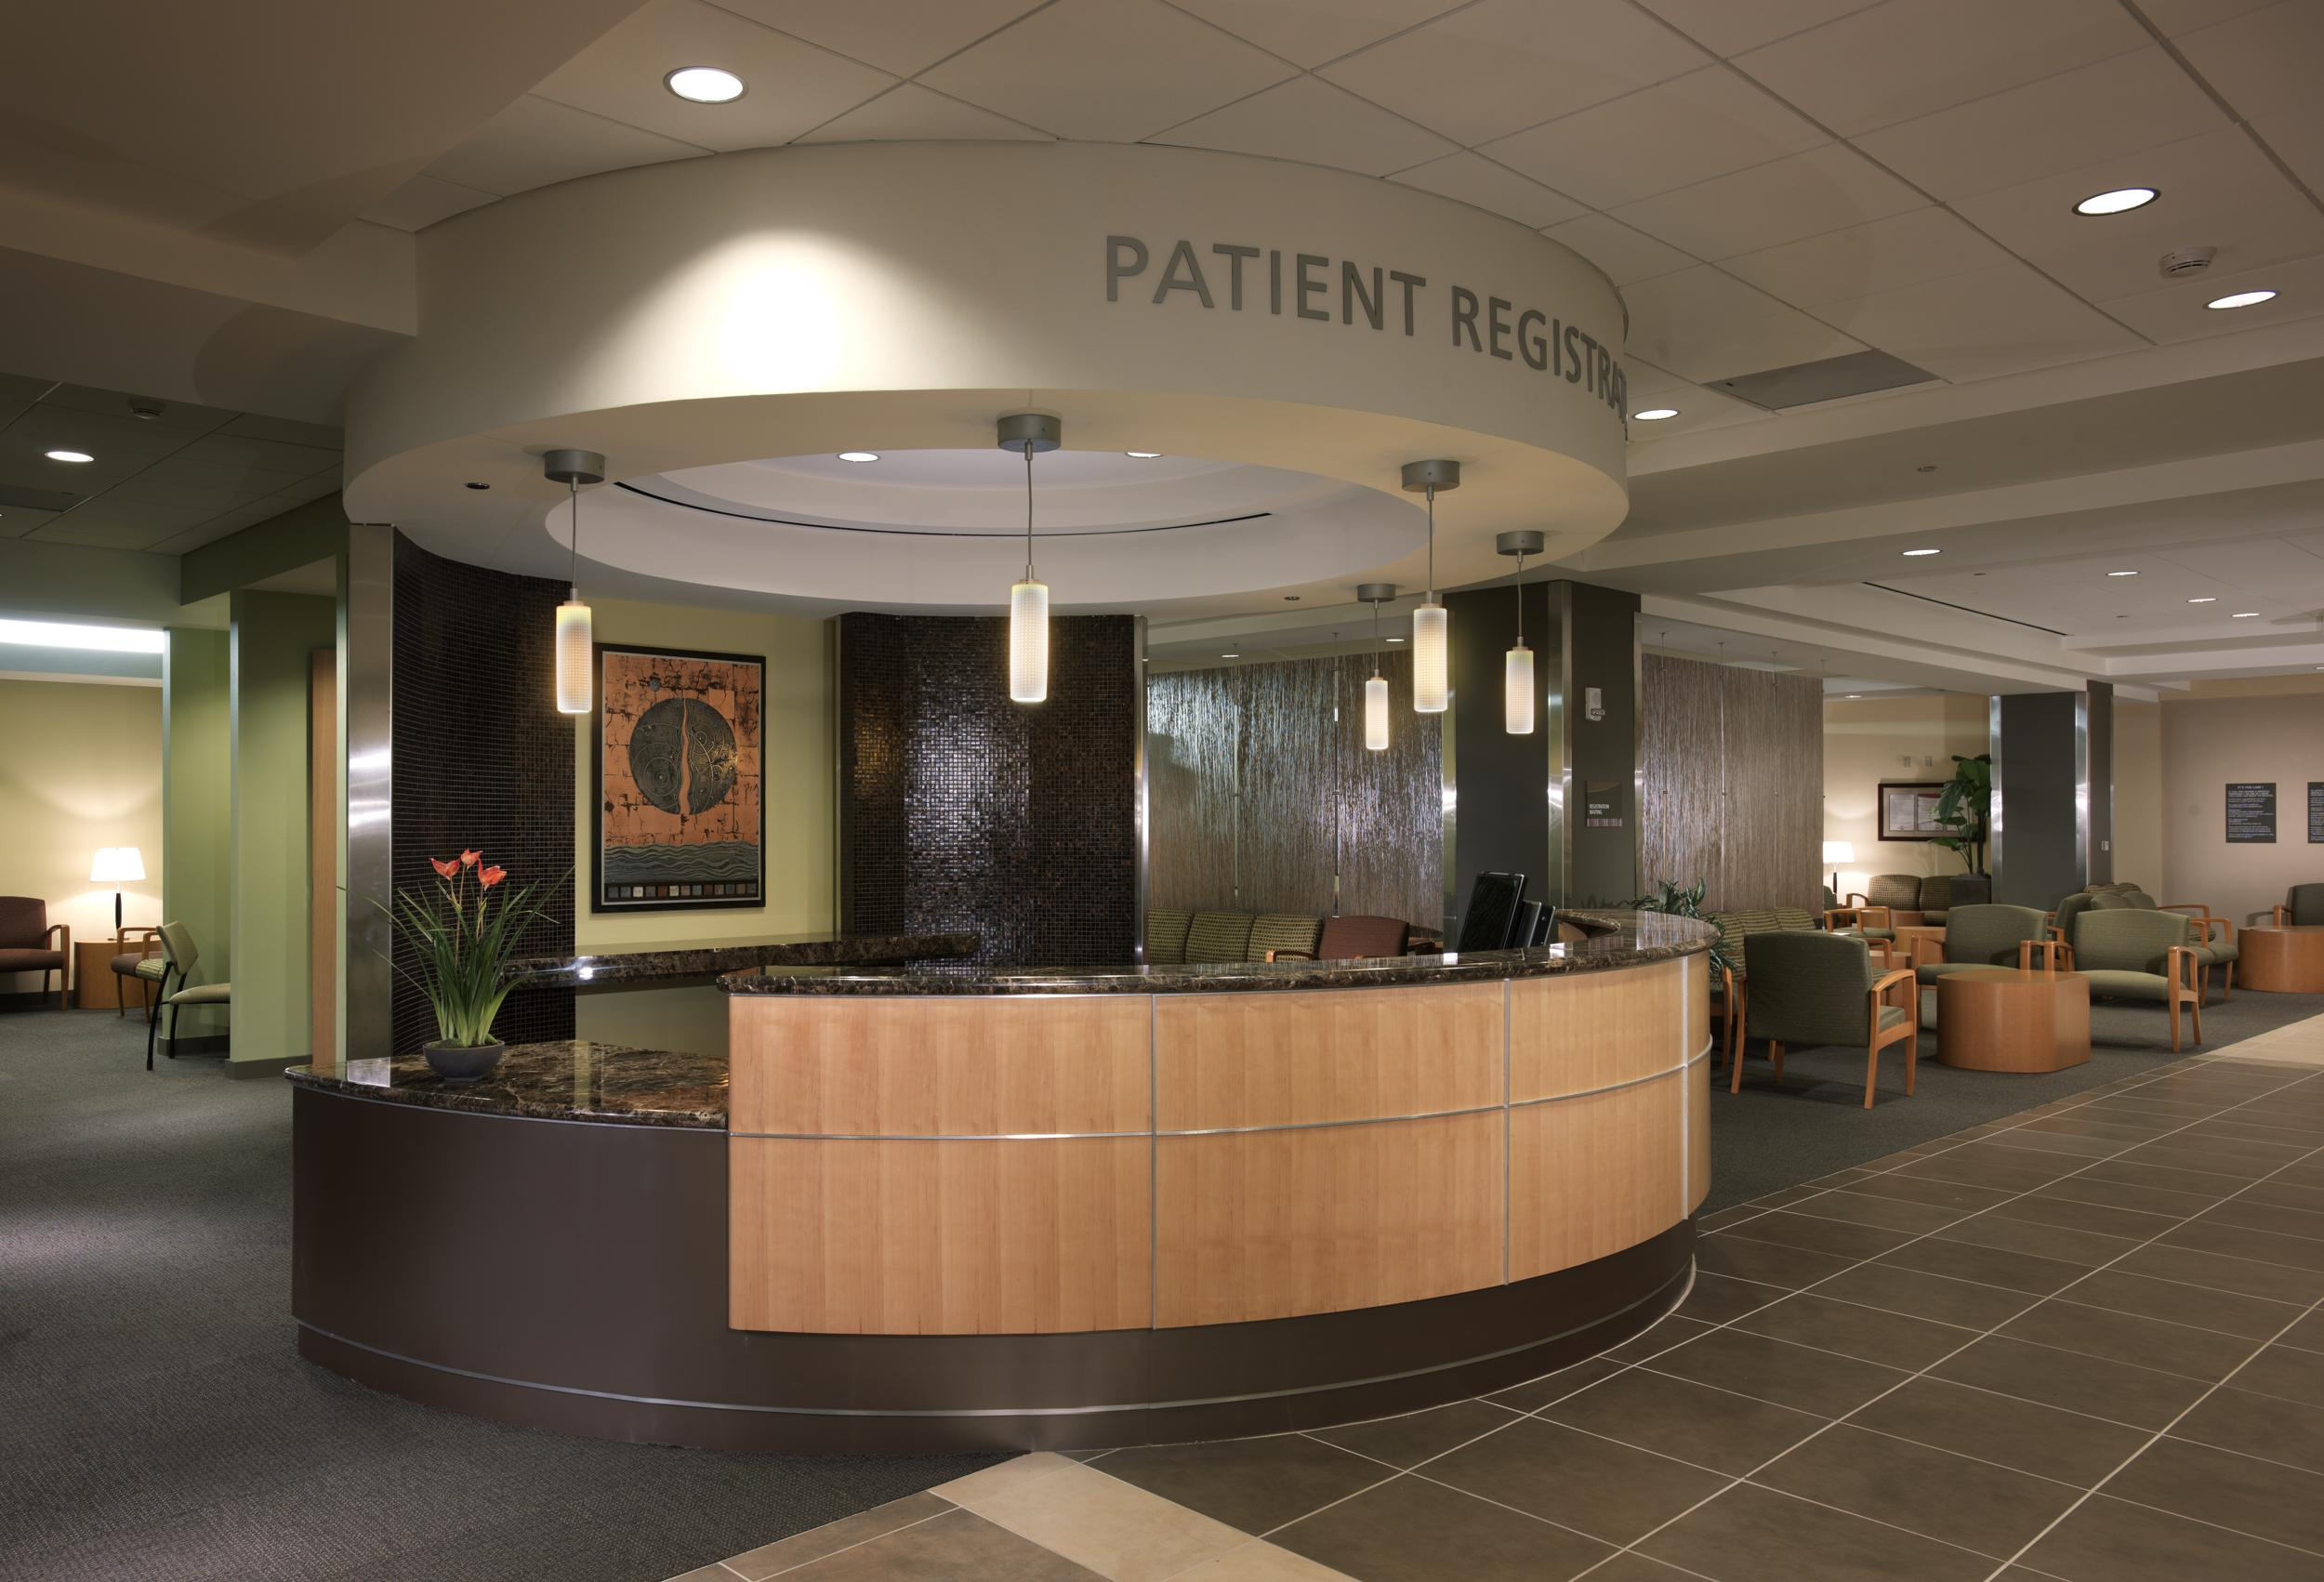 Dr Phillips Hospital Patient Room